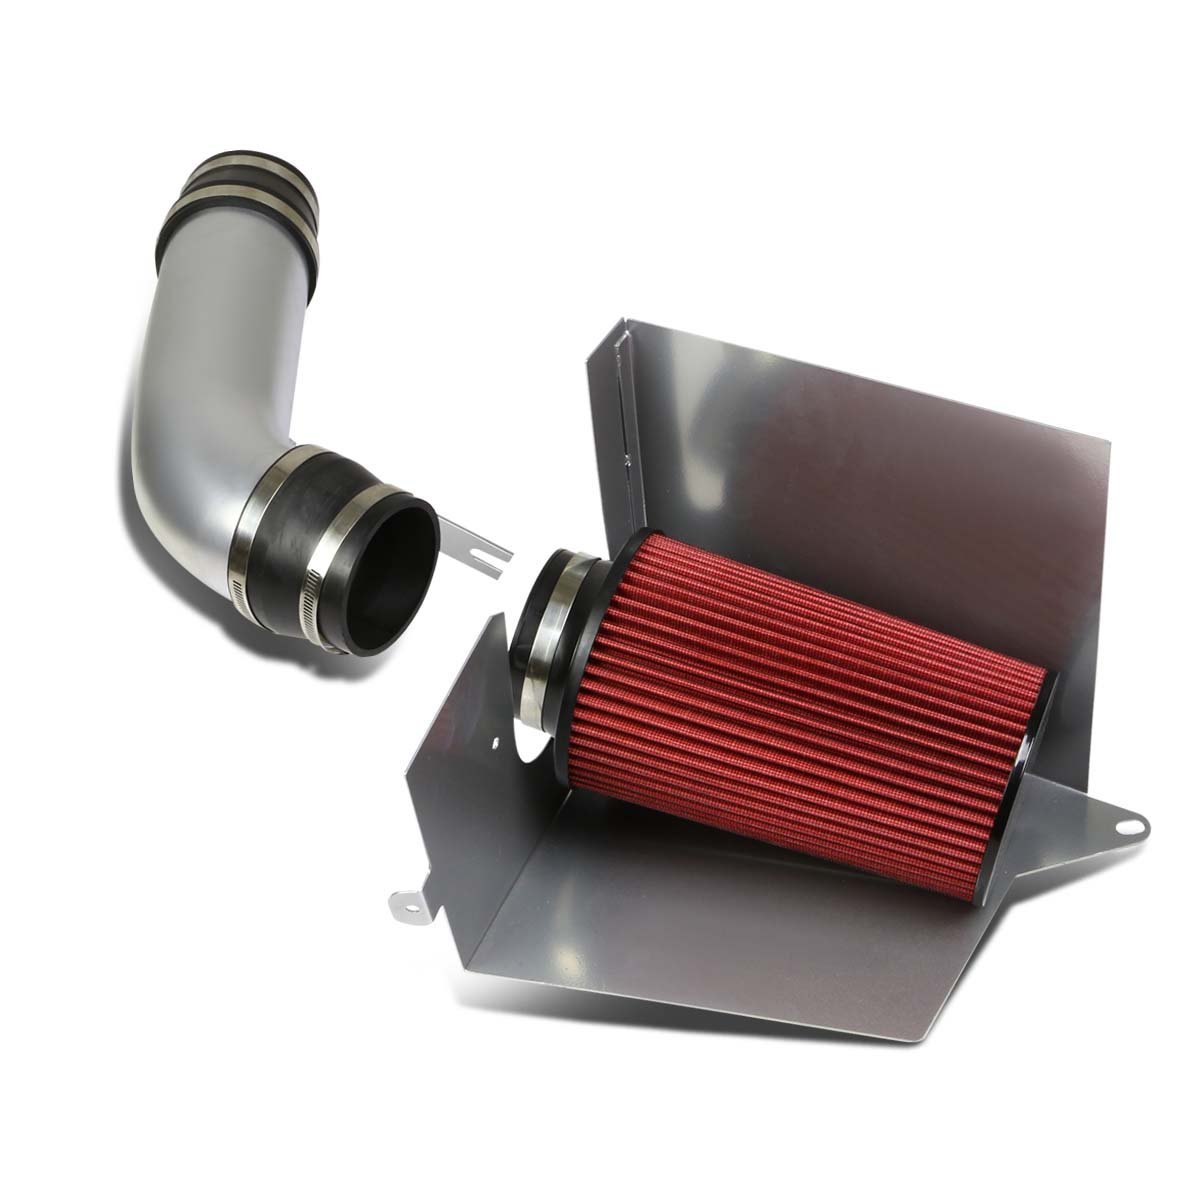 96 00 Chevy Gmc C K Series Gmt400 5 0 5 7 Polished Cold Air Intake